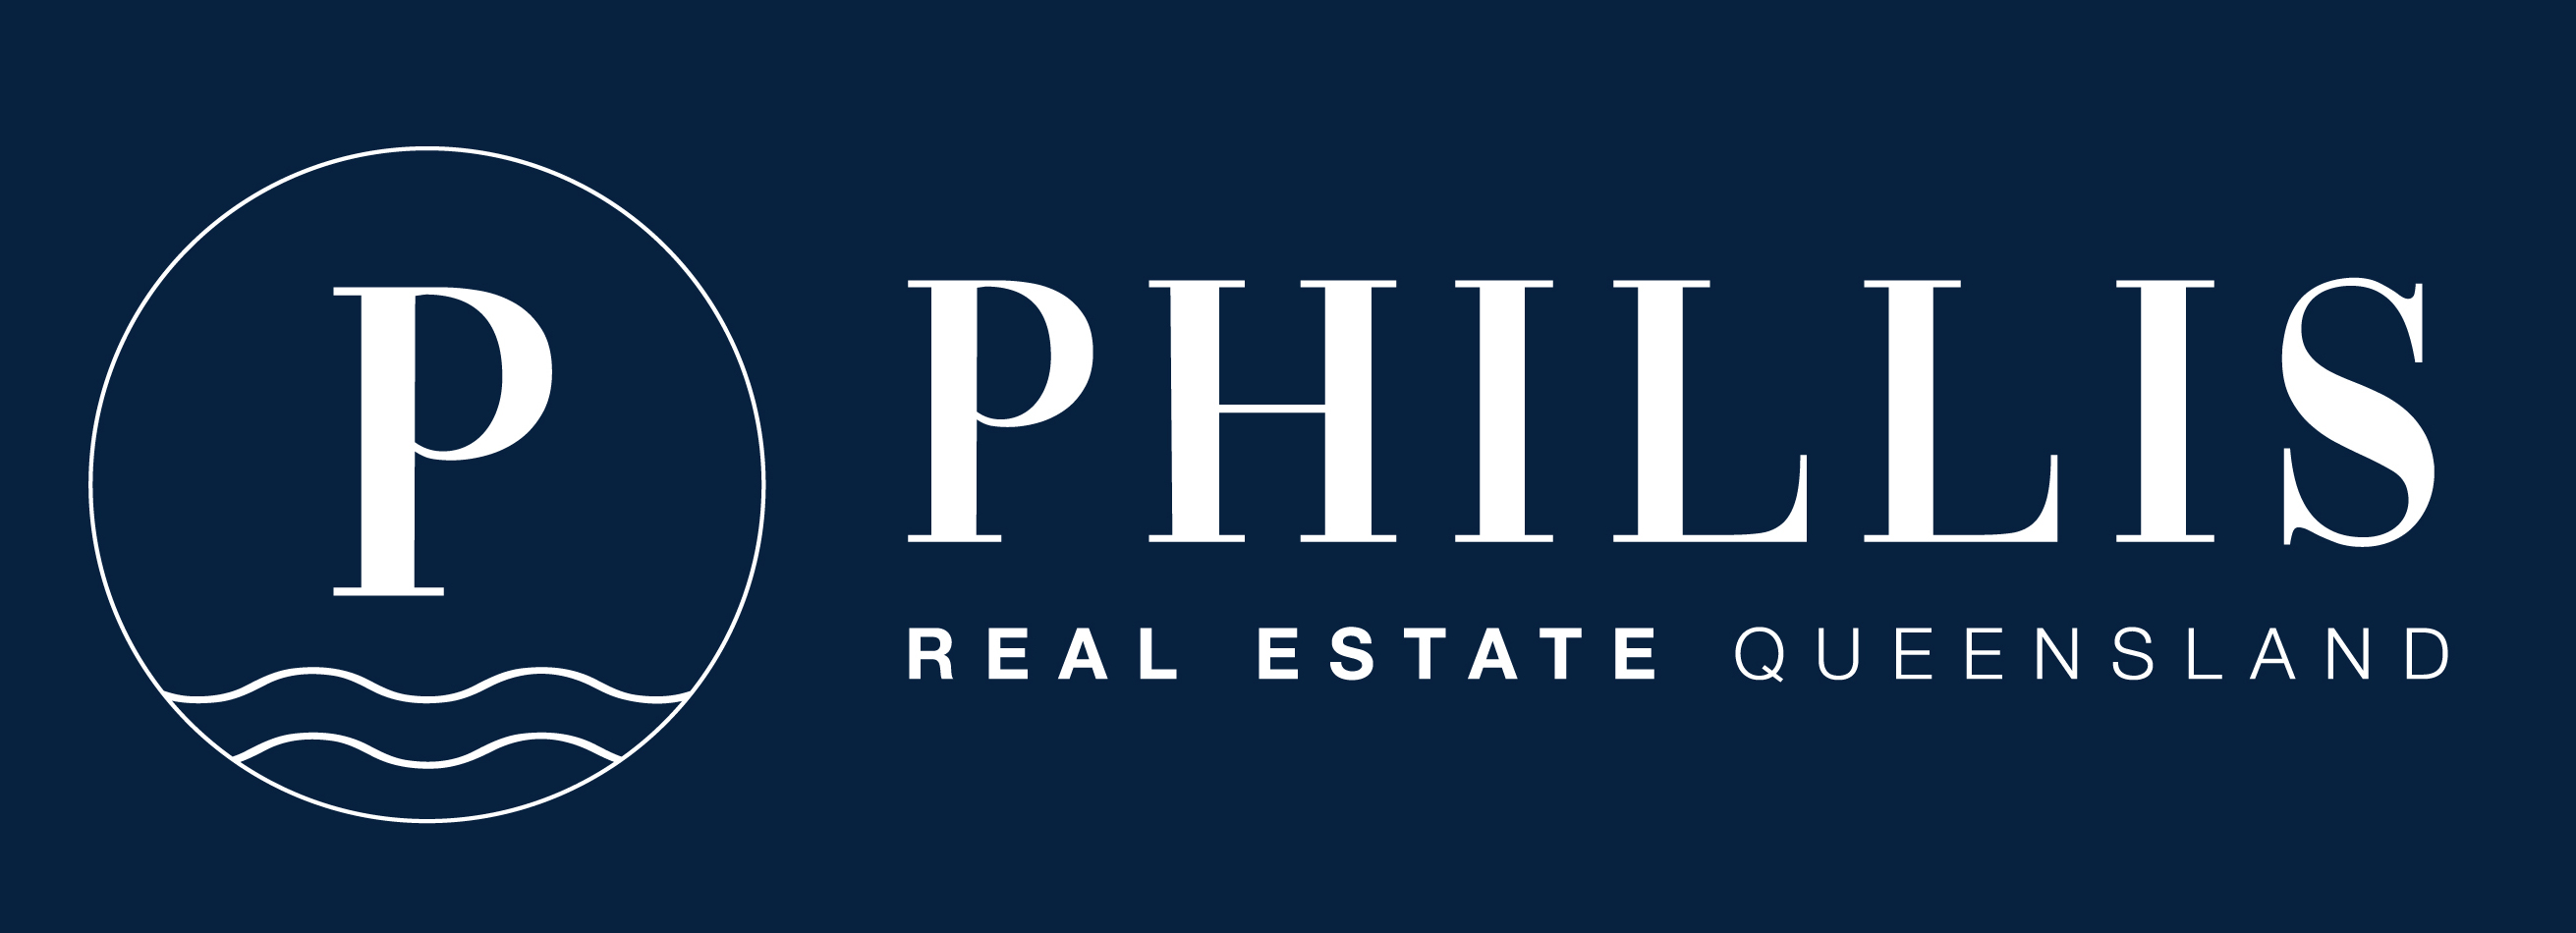 Phillis Real Estate Queensland